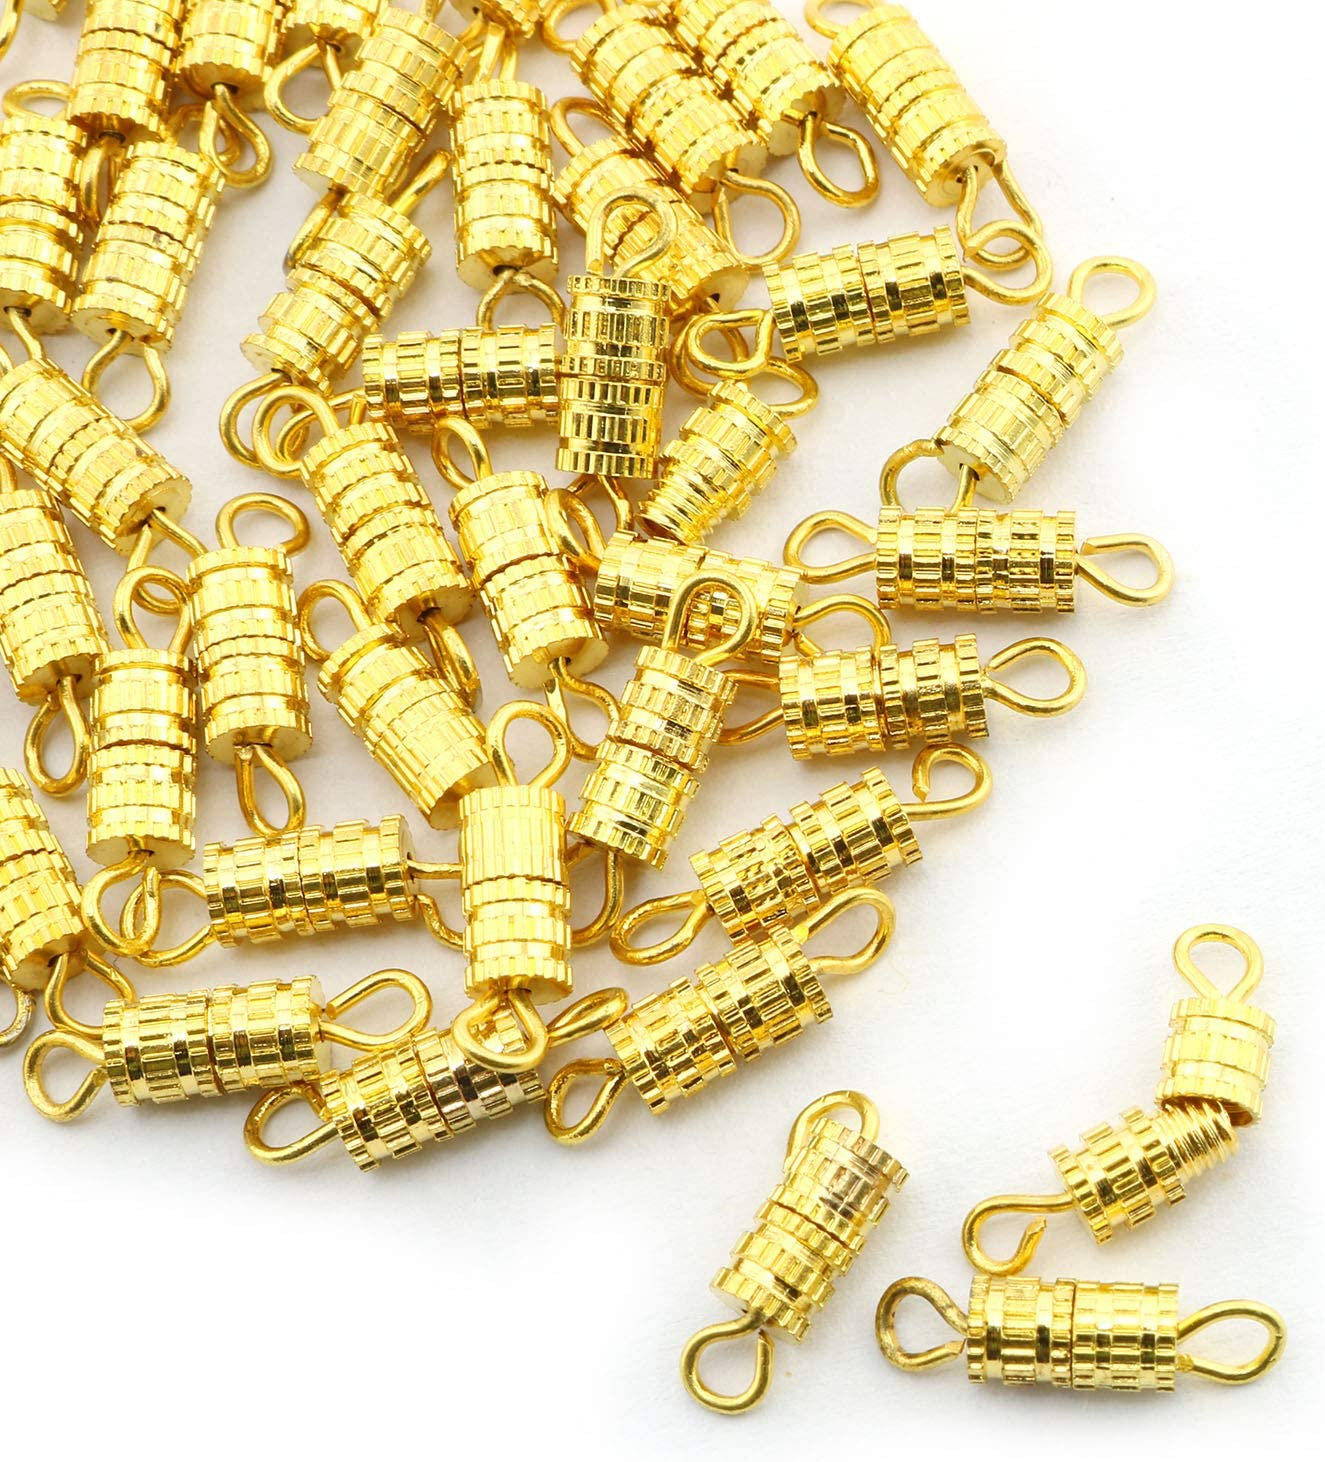 NX Garden Barrel Screw Clasps 50PCS Gold Screw Barrel Jewelry Necklace Bracelet Clasps Connectors 4x13.5mm